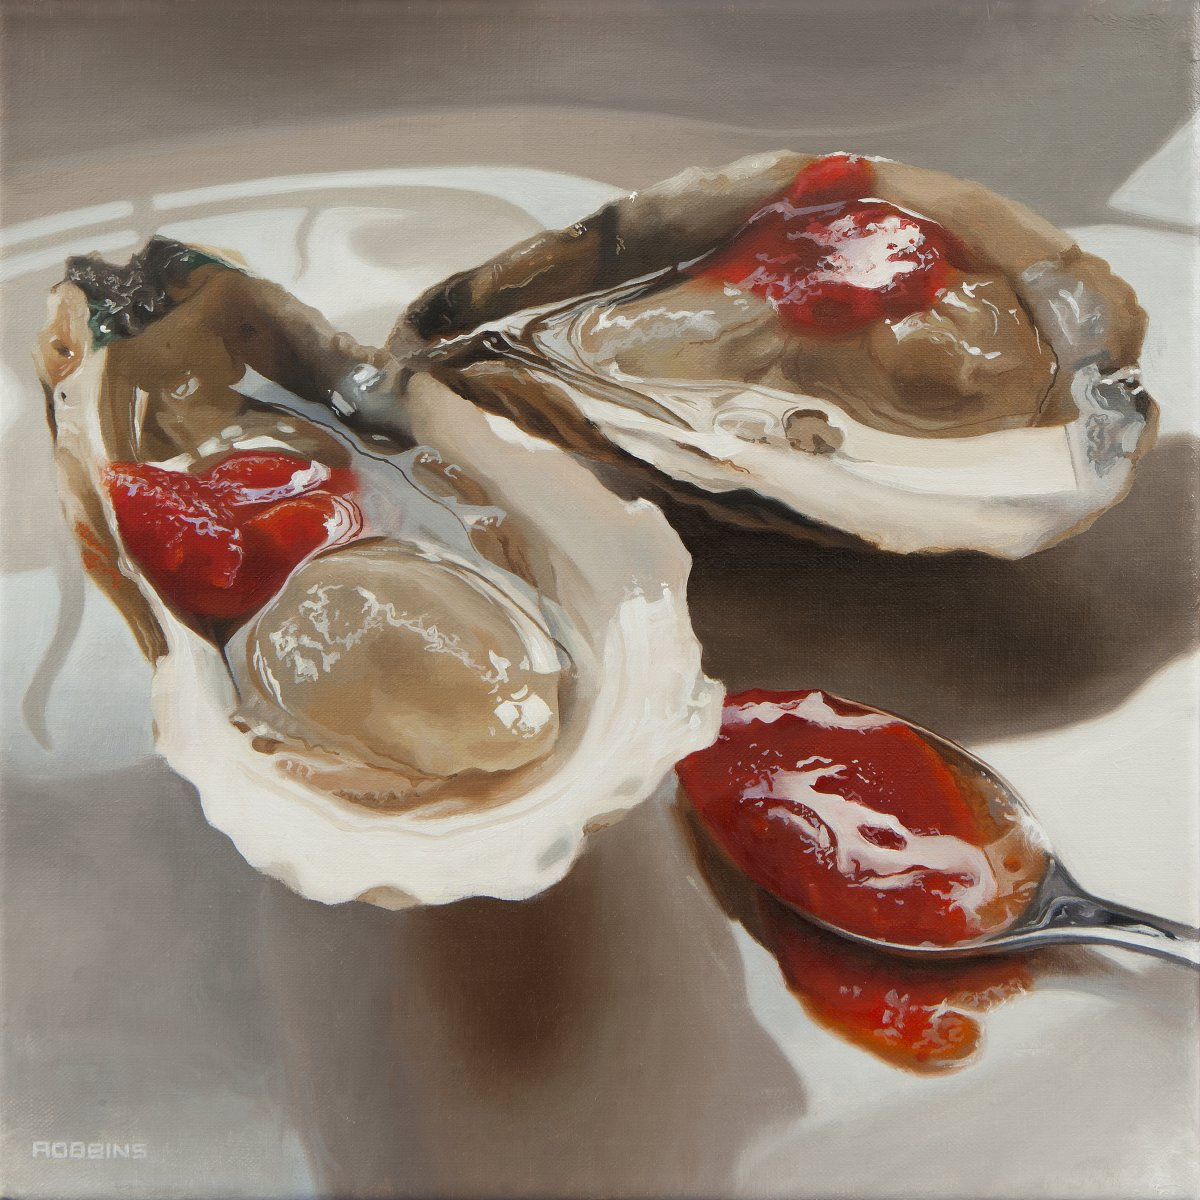 2 Sexy Oysters and a Spoonn - Nadine Robbins